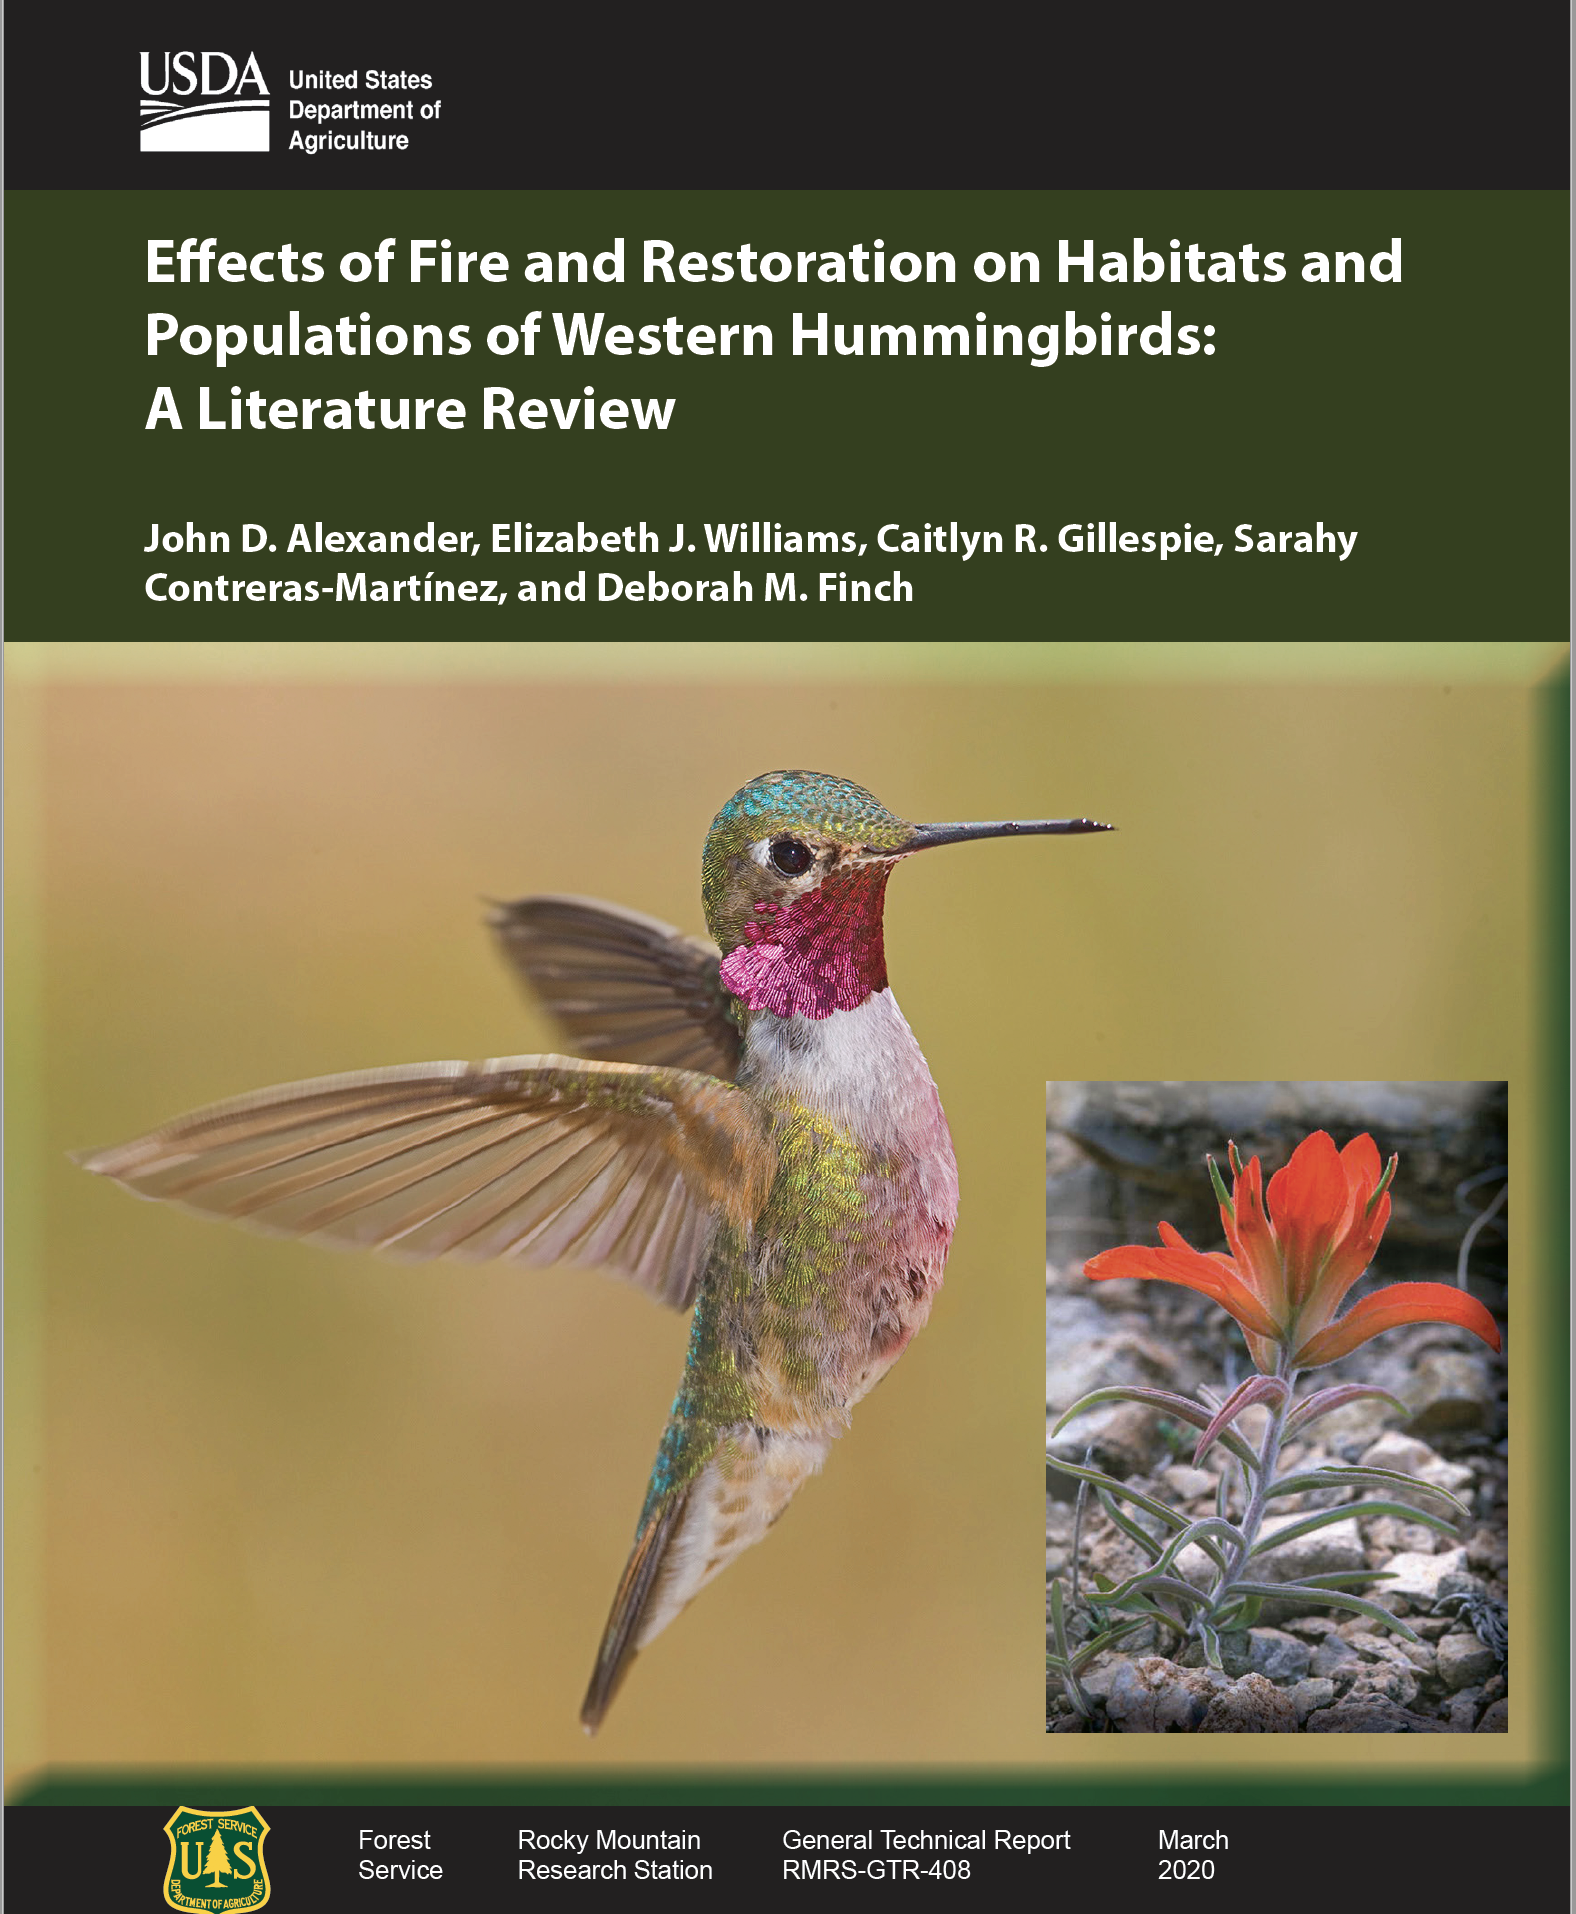 Hummingbirds & Fire: It's Complicated!